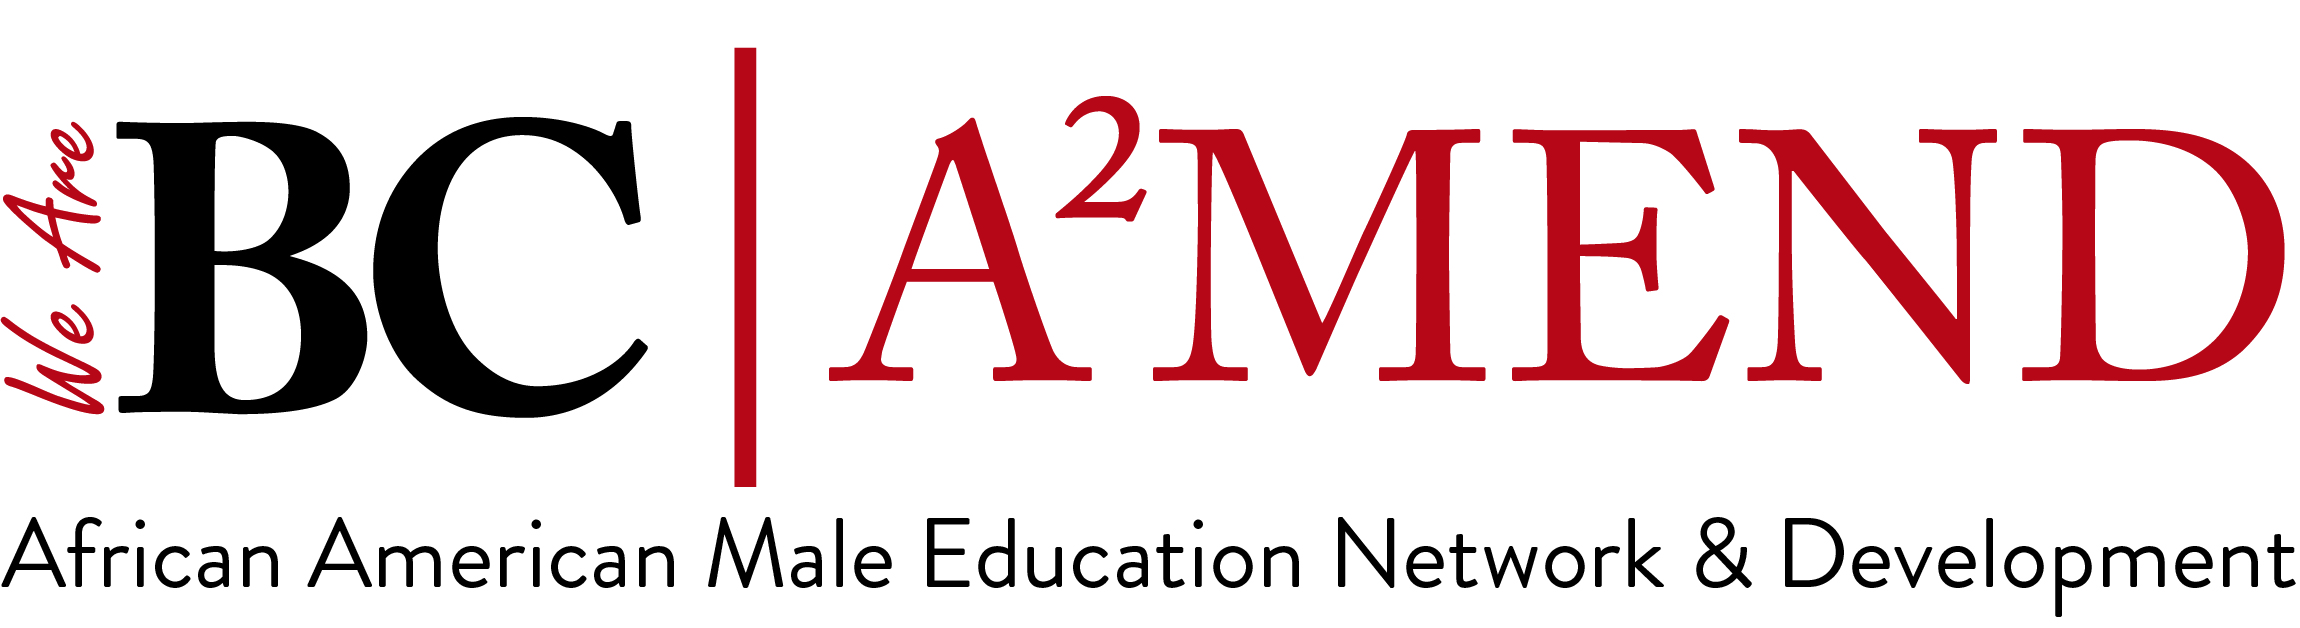 We are BC A2MEND African American Male Education Network and Development logo.